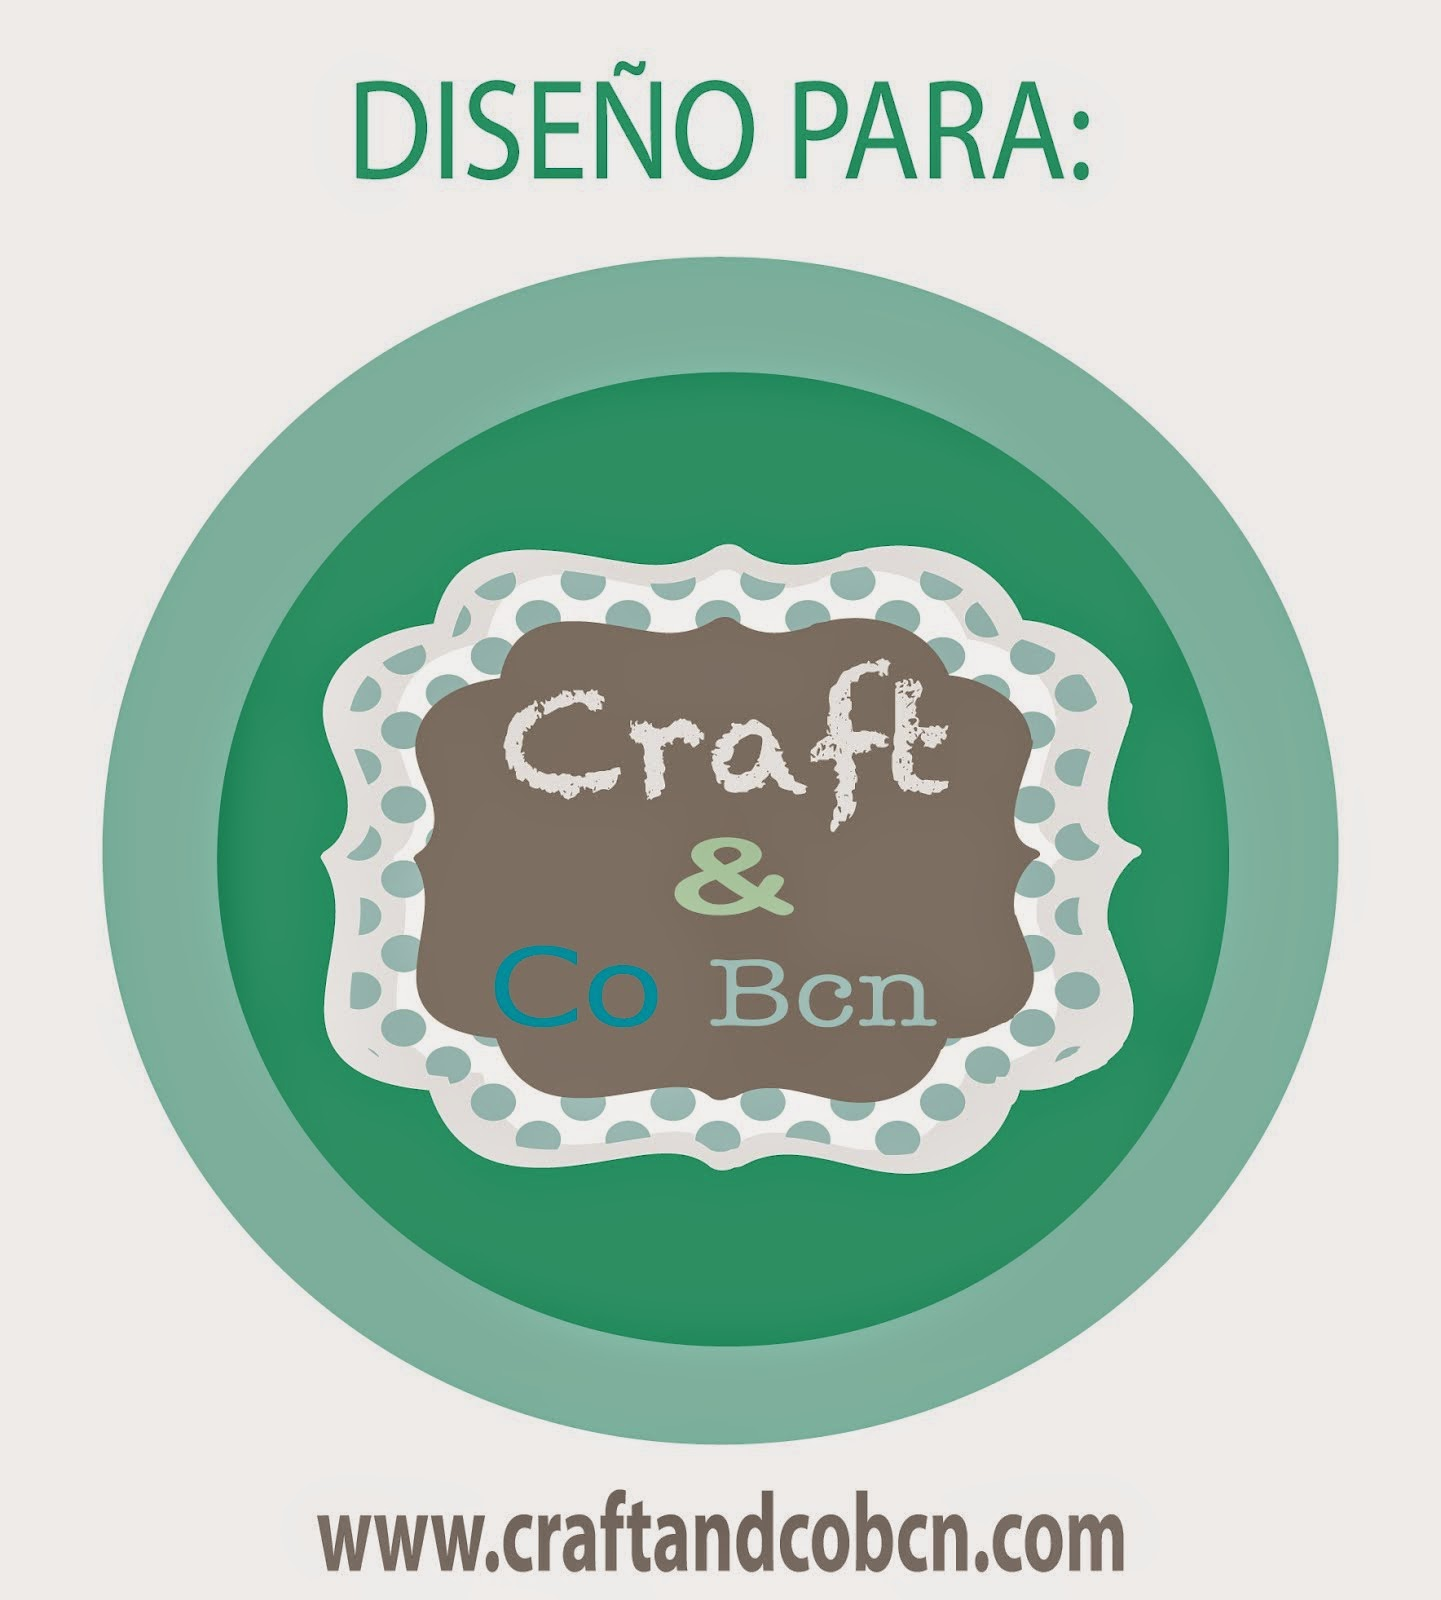 DT para Craft & Co Bcn